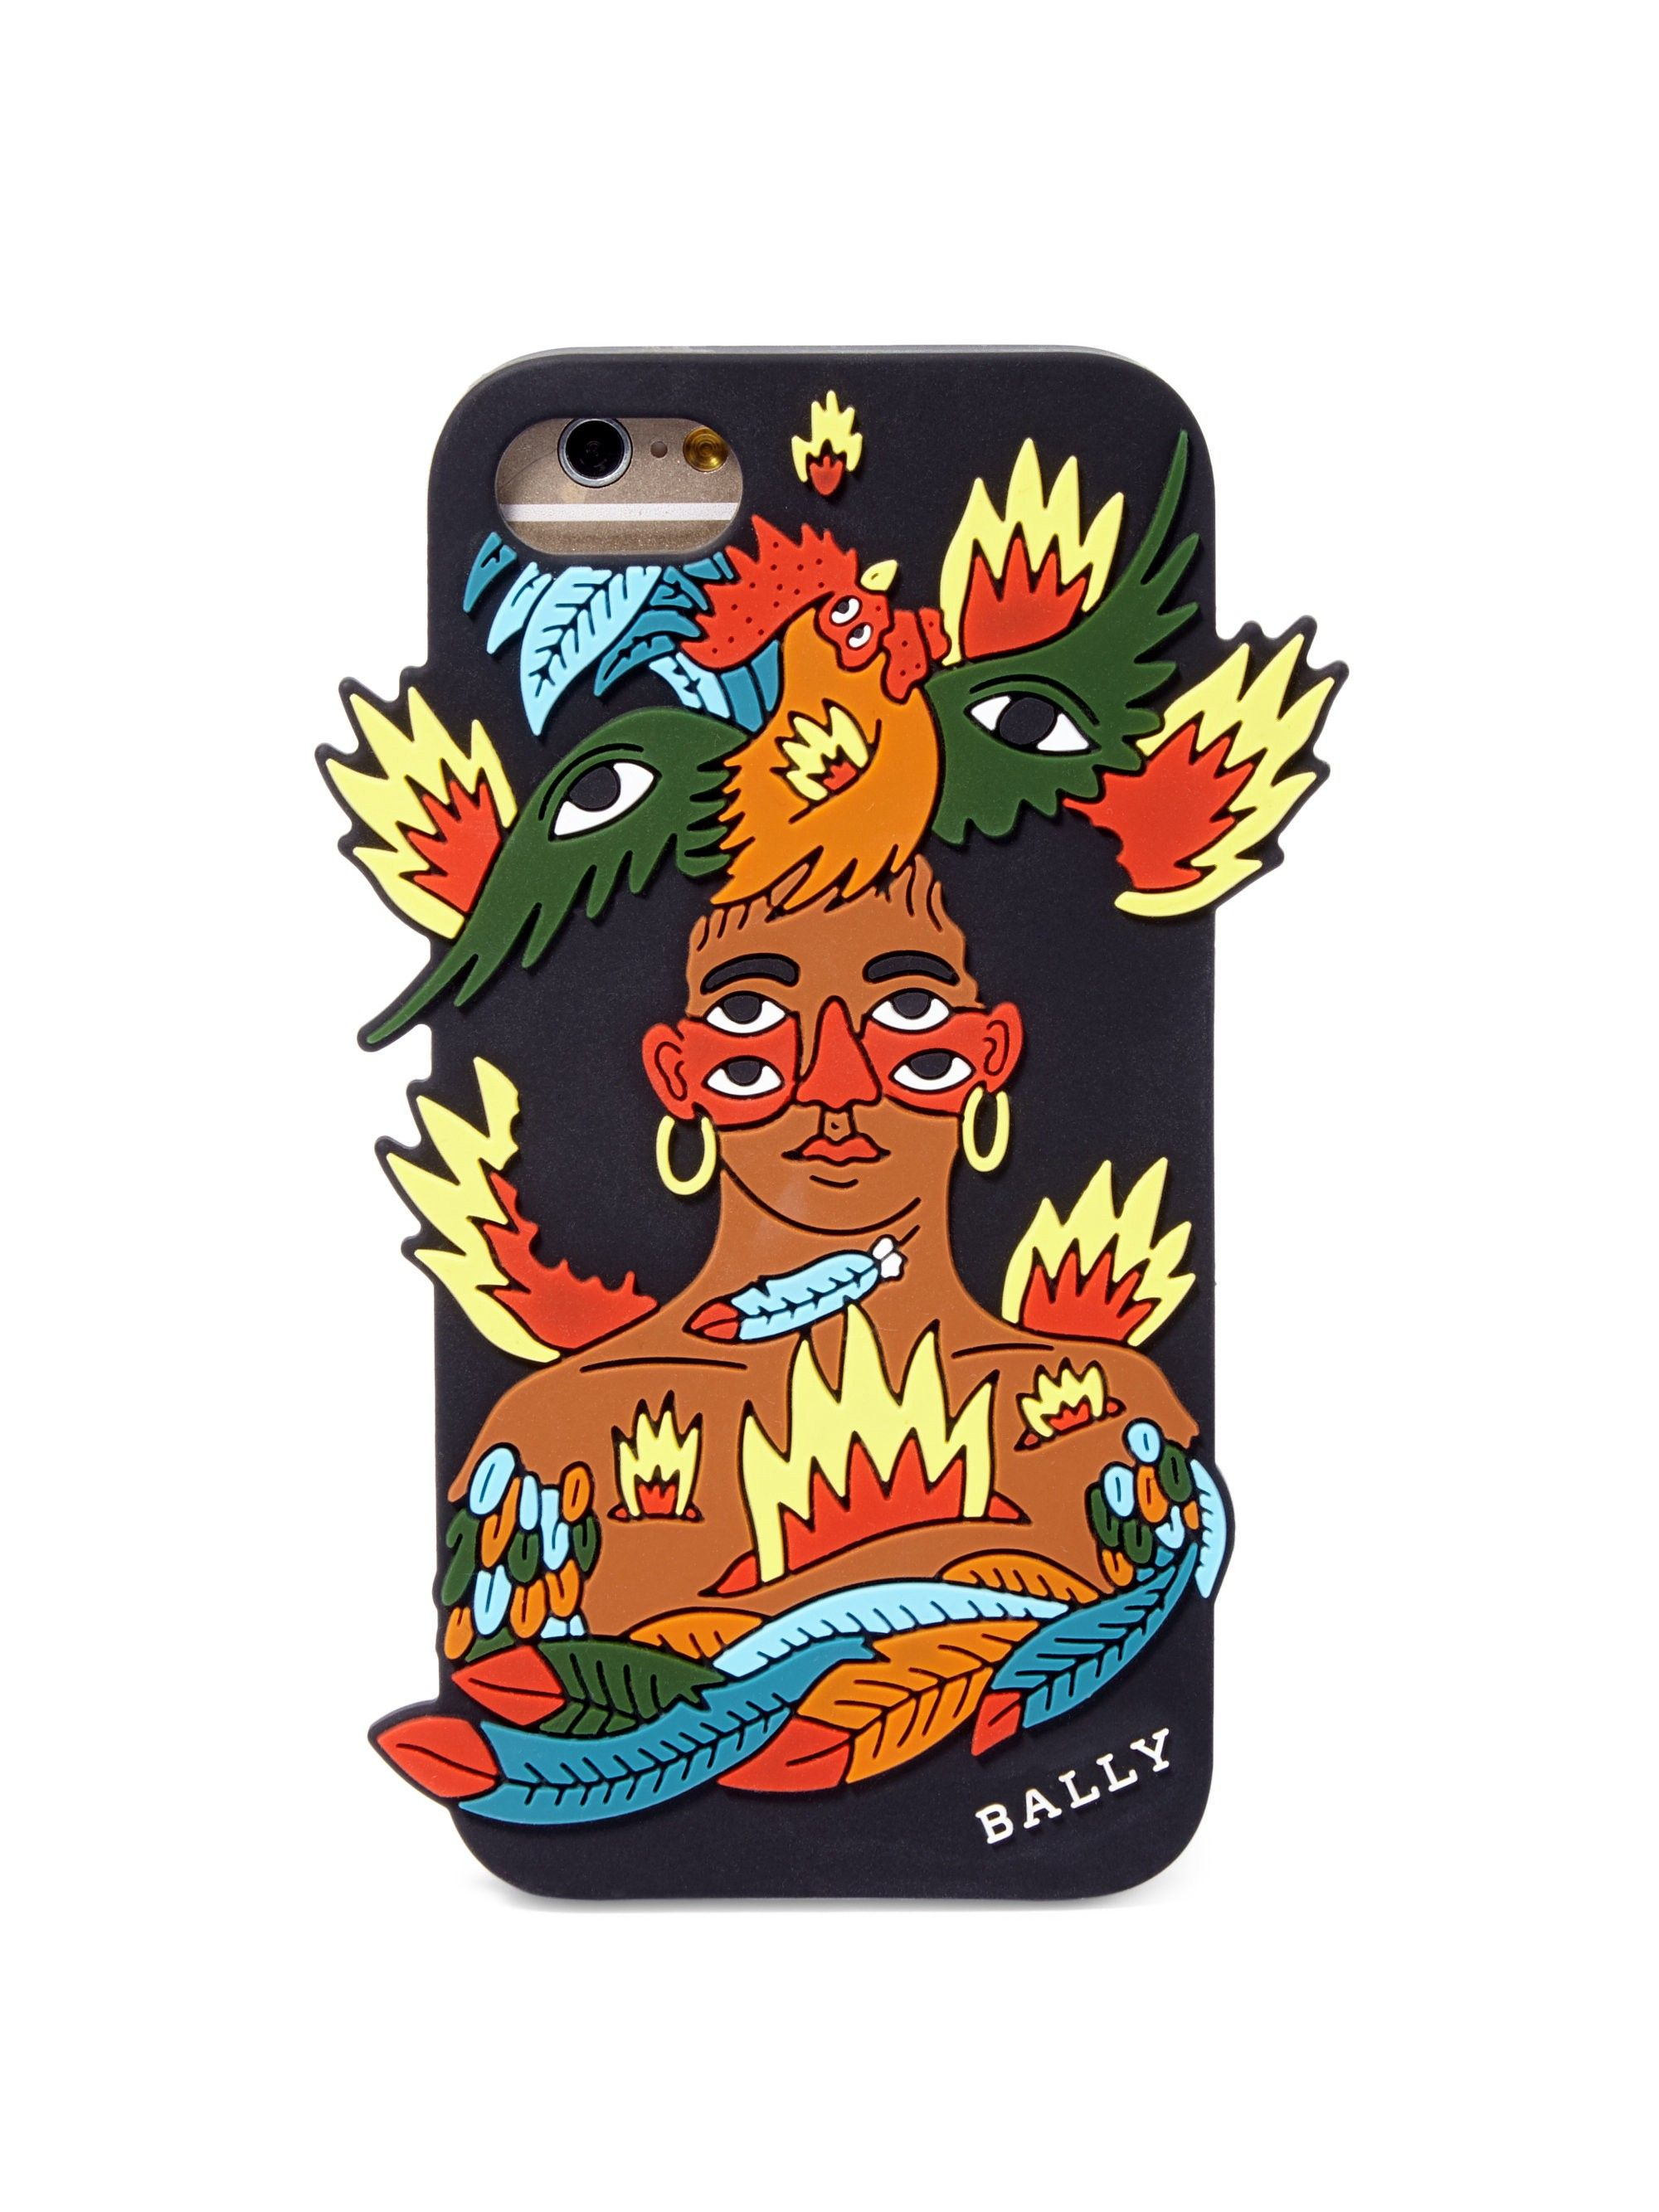 new arrival 21dc8 3f42d Bally X Swizz Beatz Iphone Case - Multi   Products   Iphone cases ...